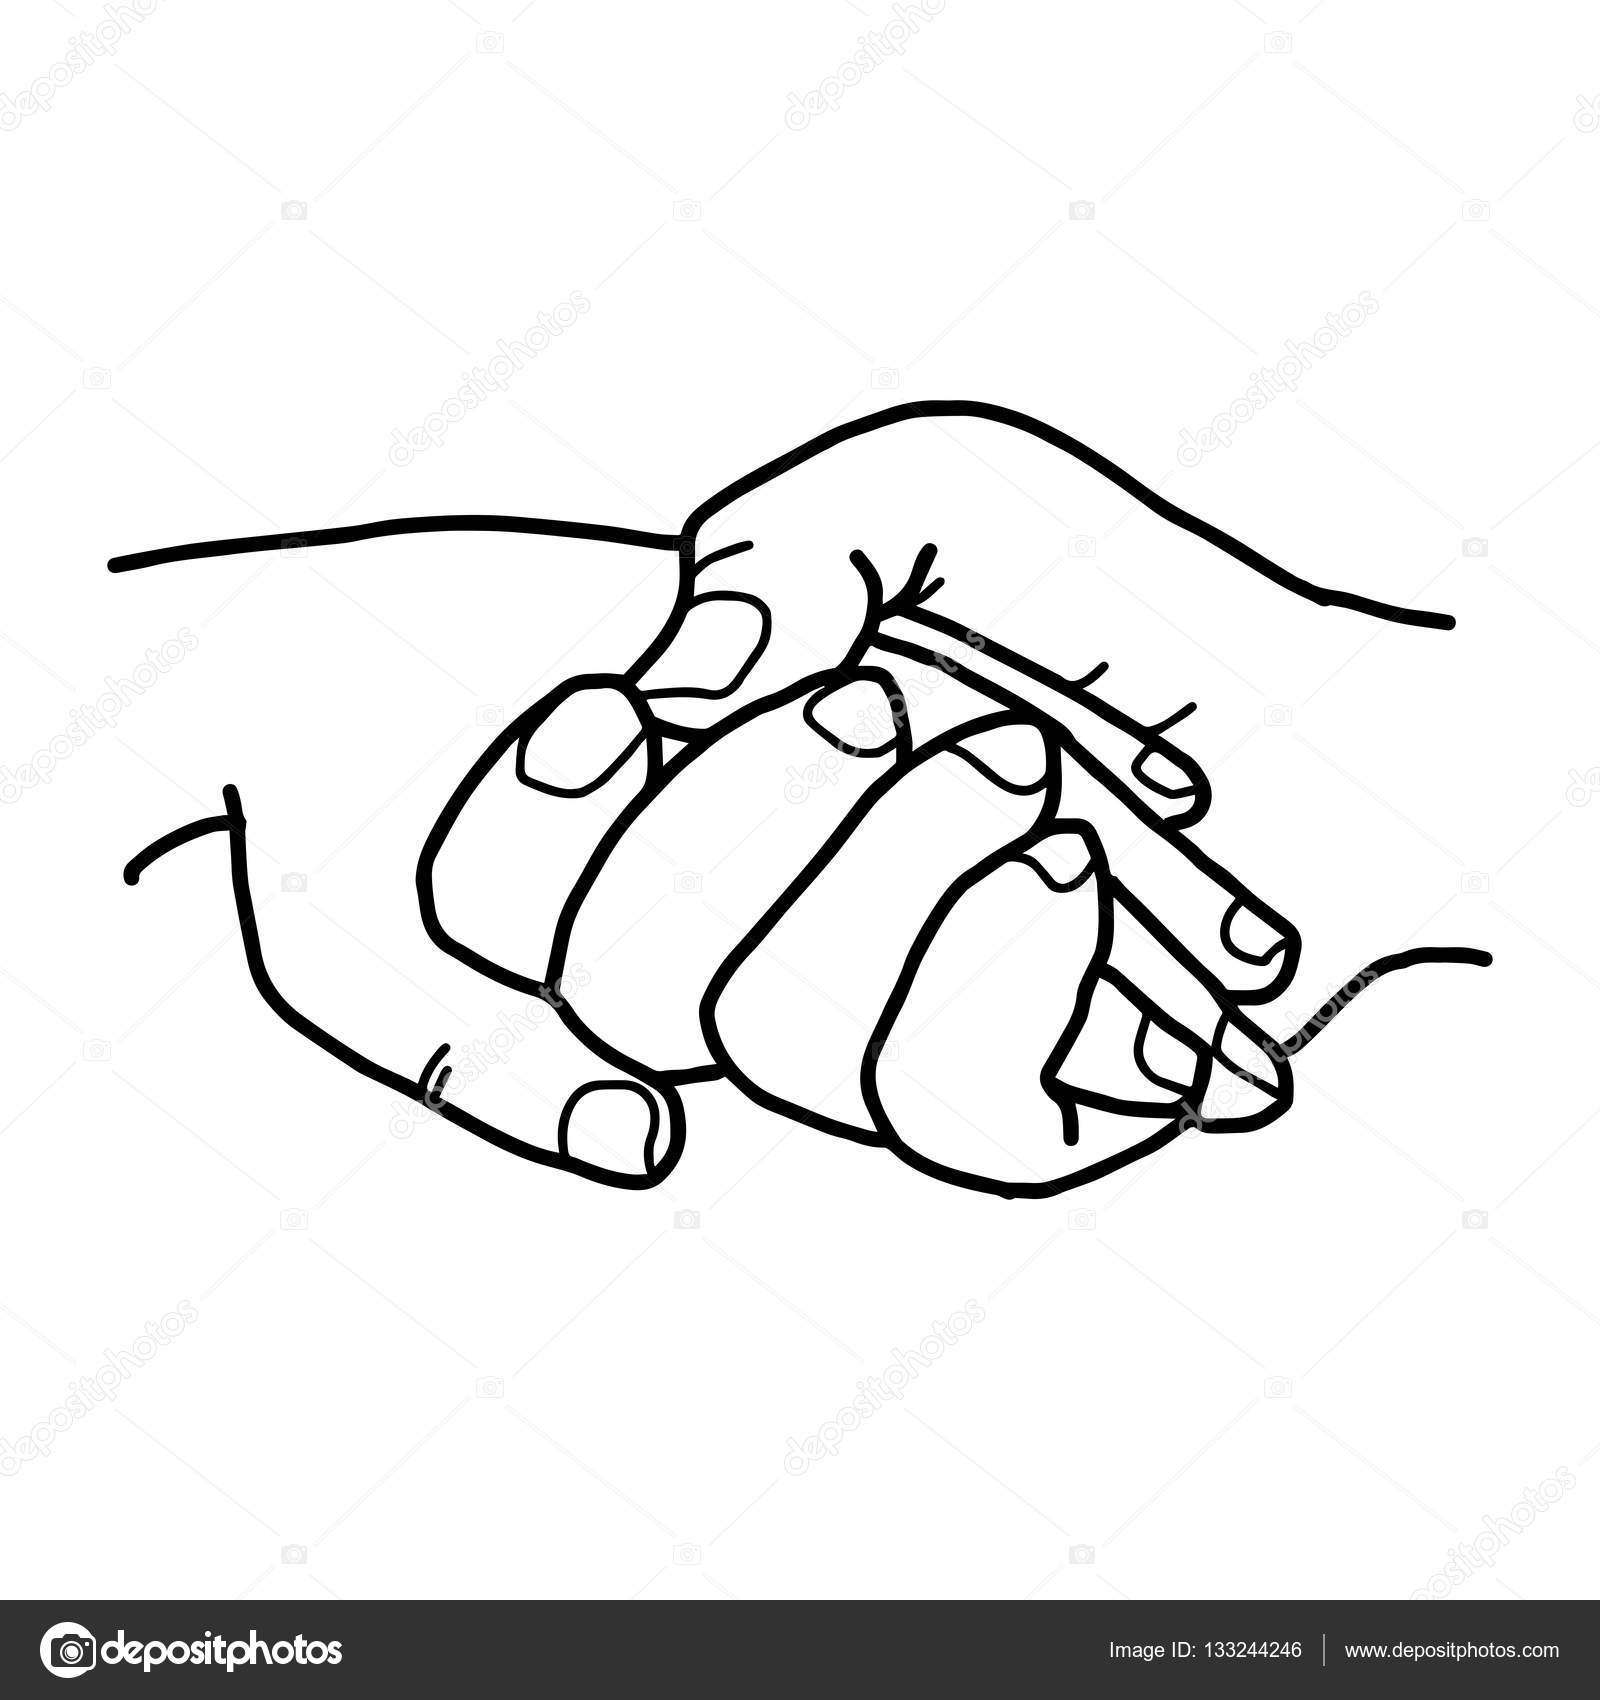 1600x1700 Illustration Vector Doodles Hand Drawn Two People Holding Hands